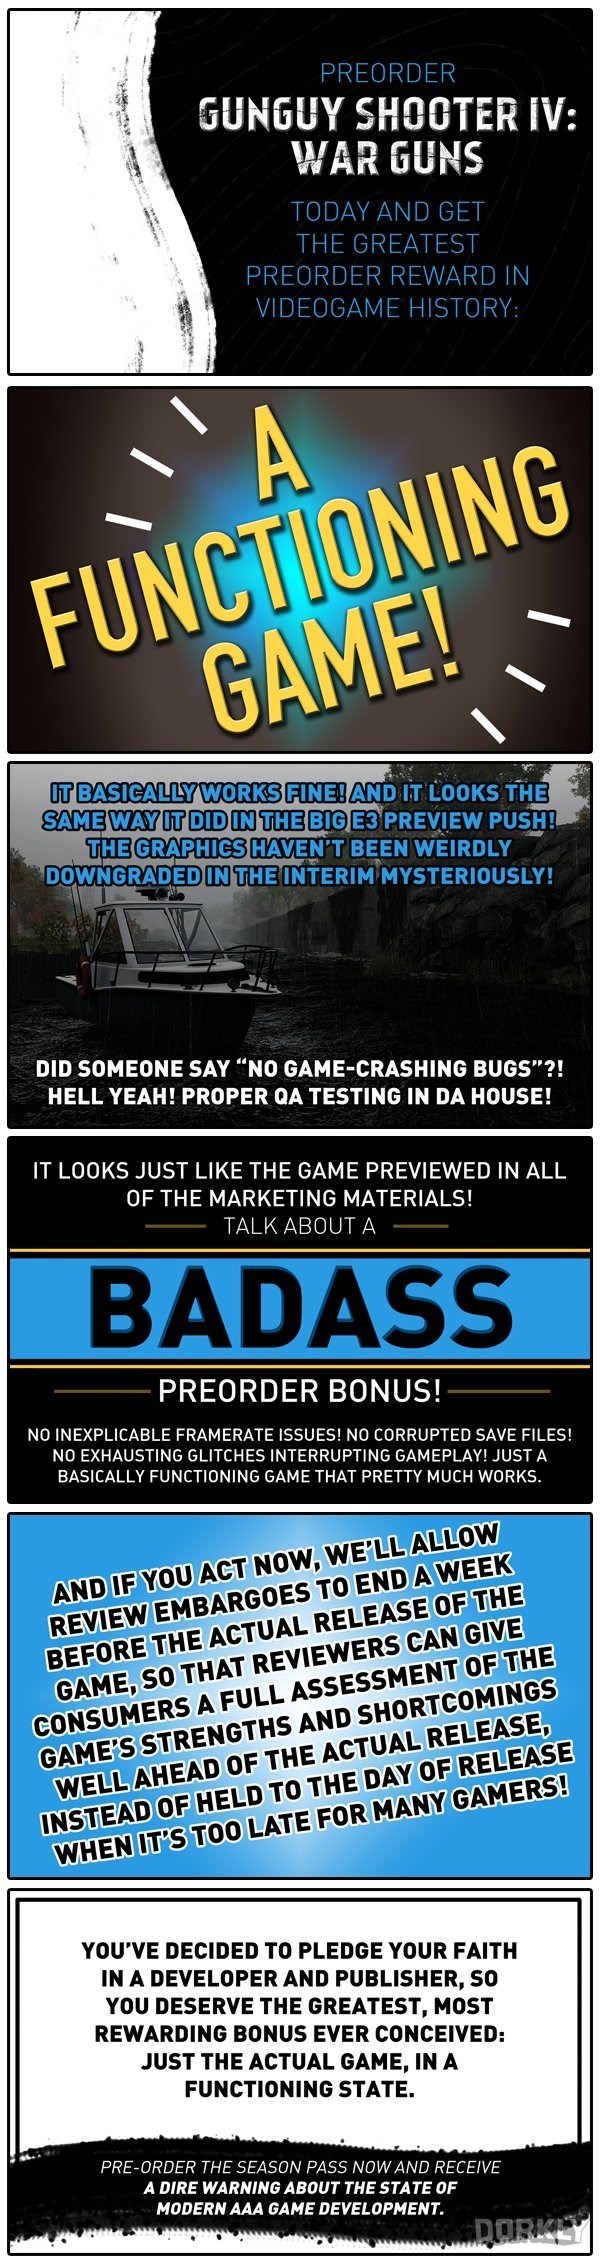 video-games-preorder-tactic-we-would-be-okay-with